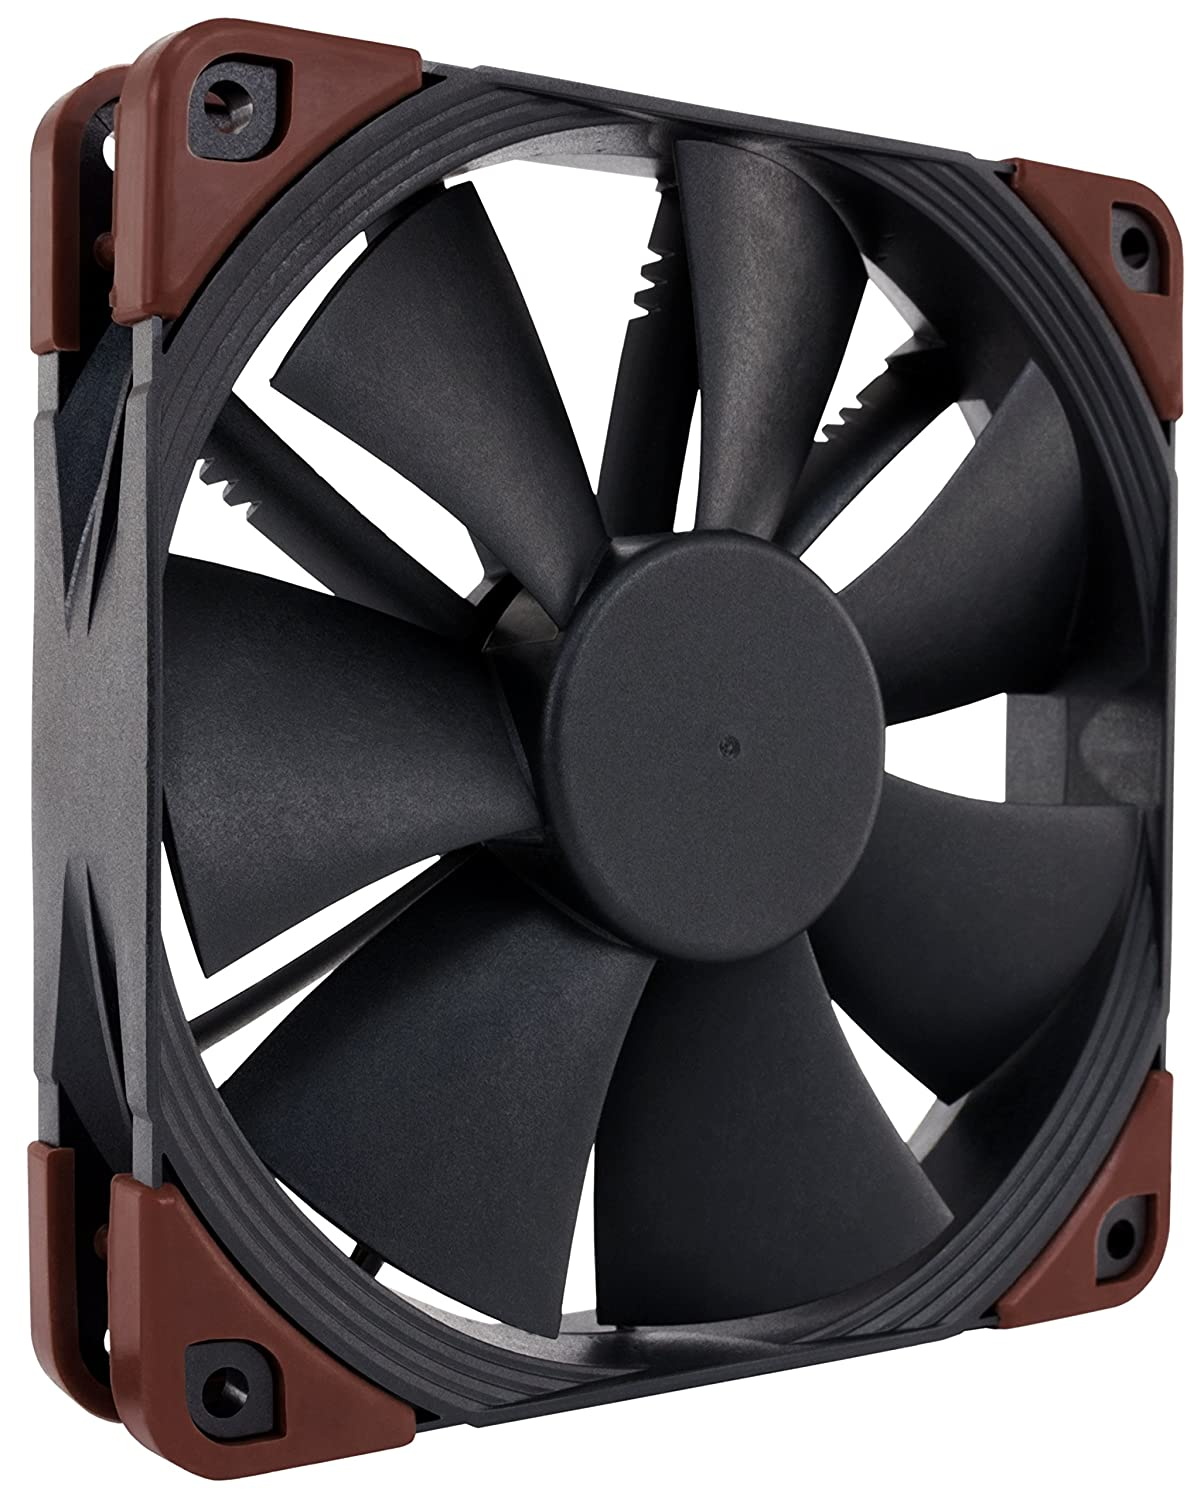 Noctua NF-F12 iPPC-24V-3000 Q100 IP67 PWM, Heavy Duty Cooling Fan, 4-Pin, 3000 RPM, 24V Version (120mm, Black)